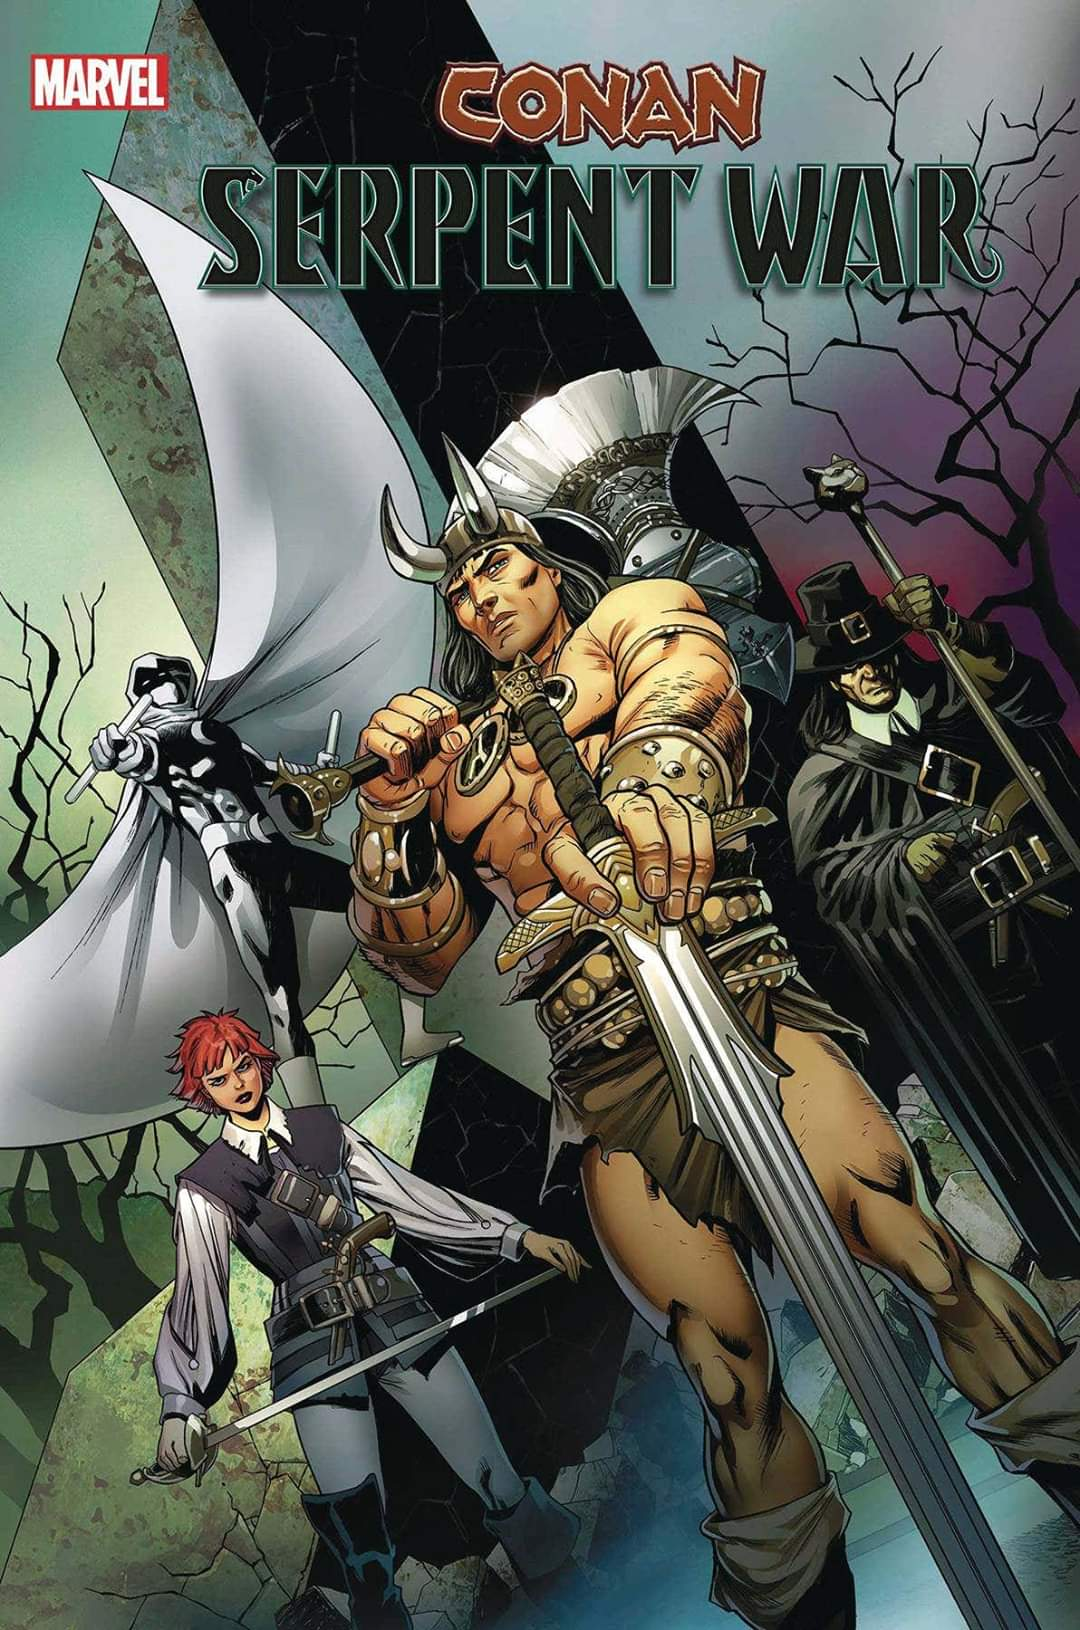 Conan: Serpent War #1, Marvel